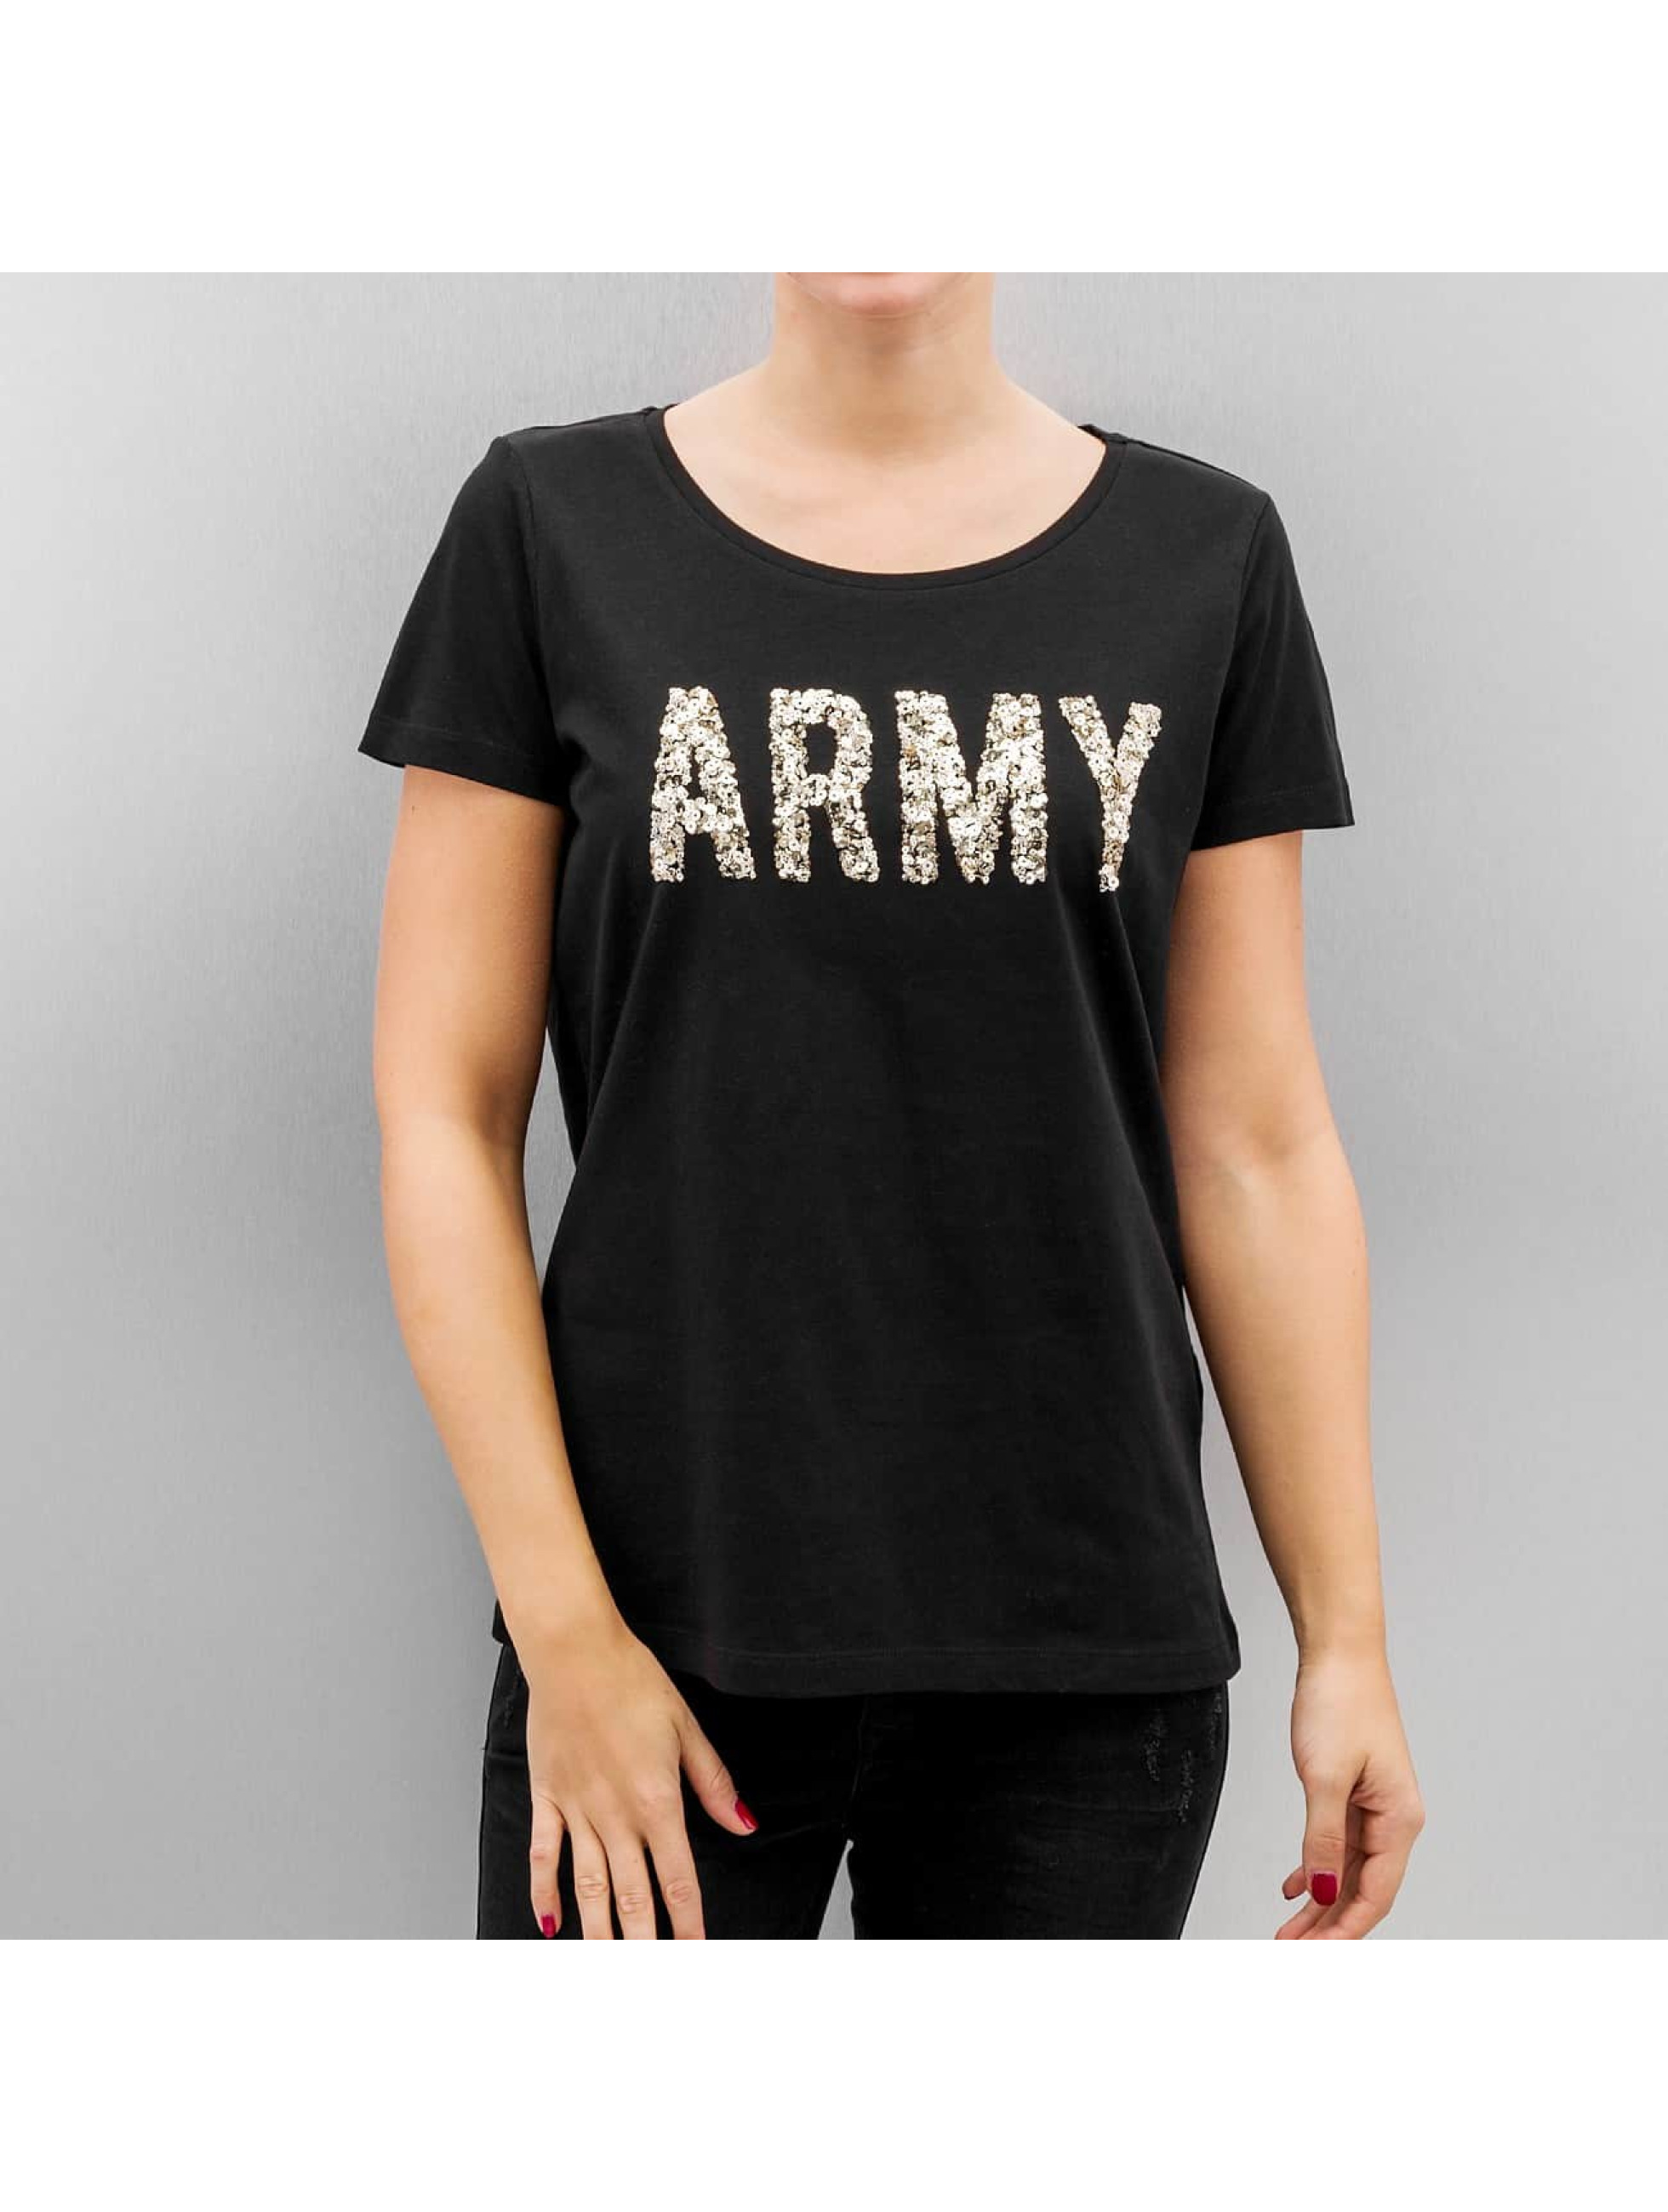 T-Shirt Vmarmy in schwarz